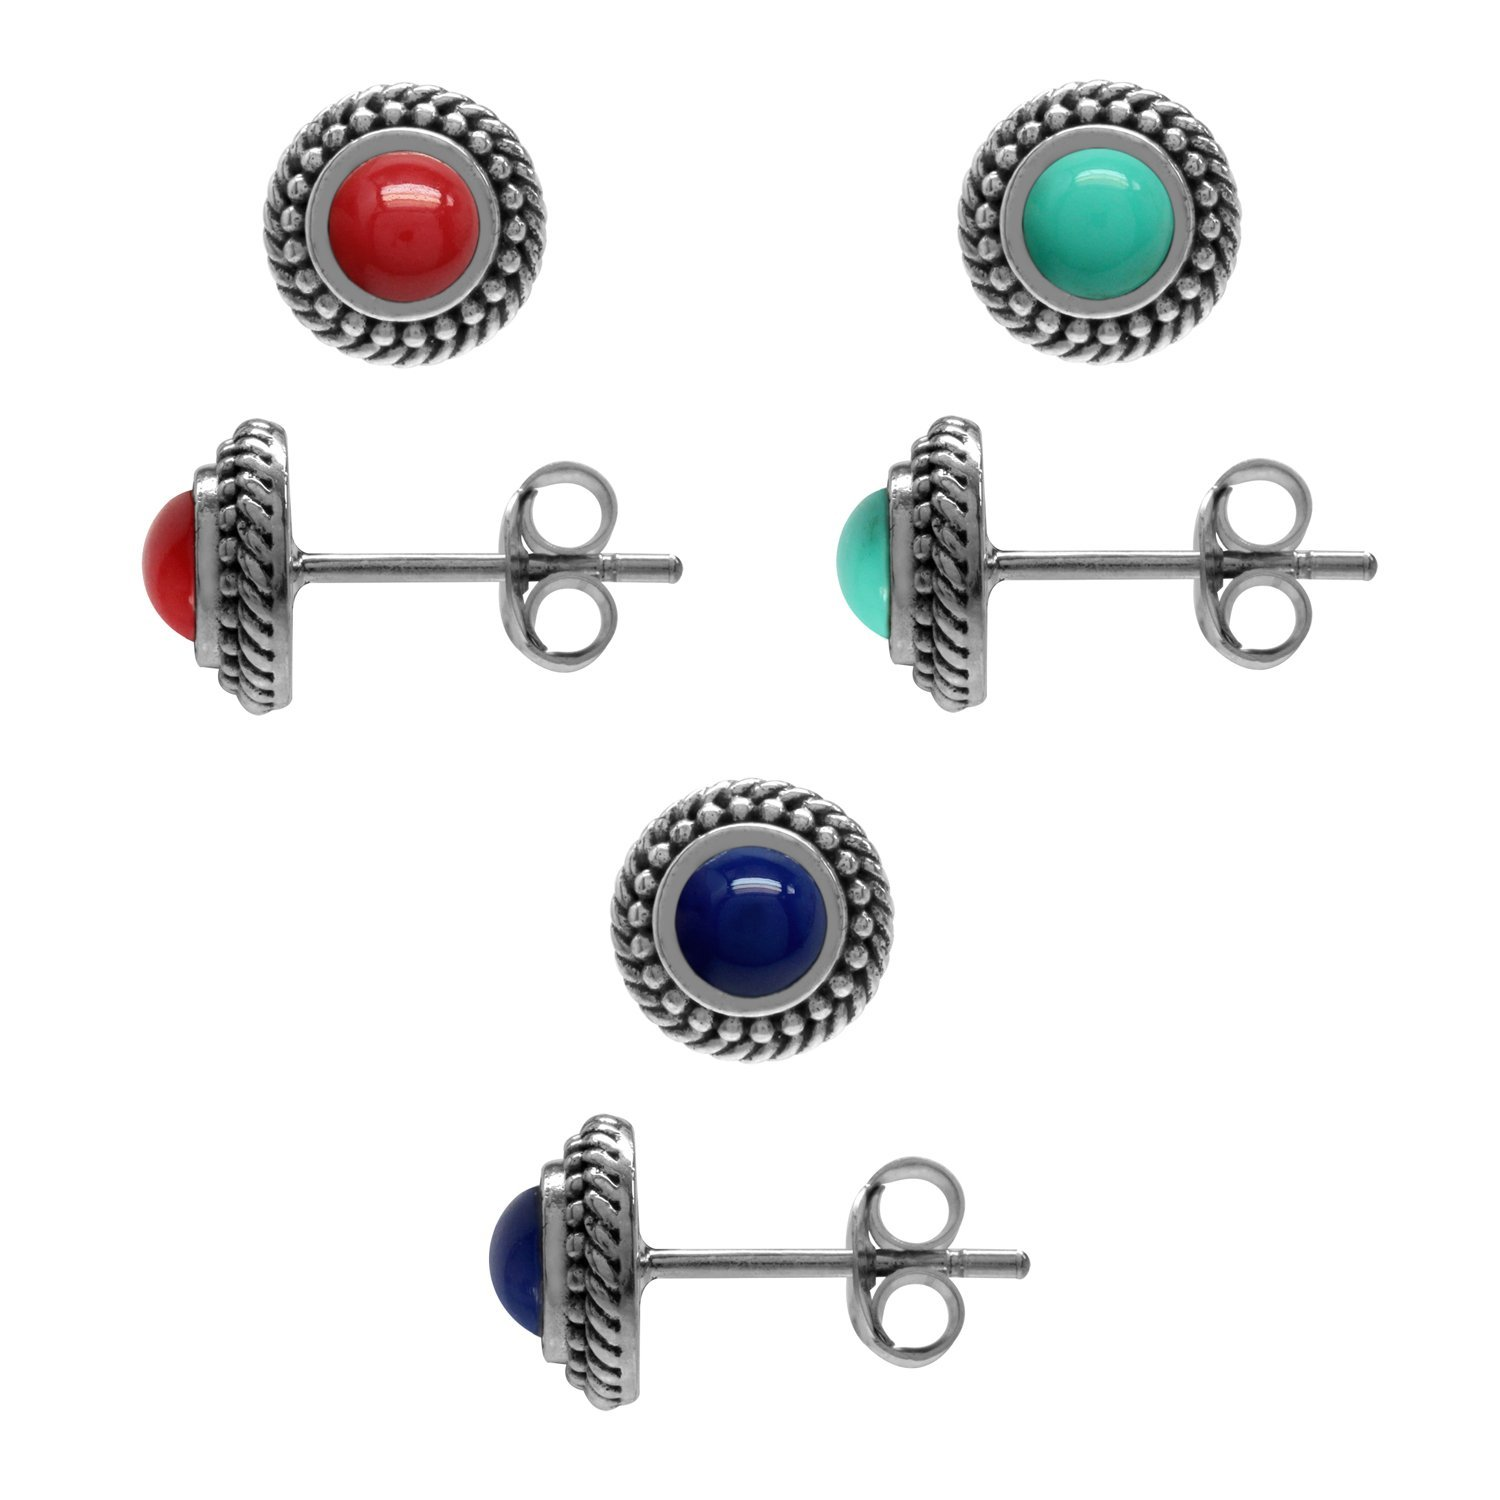 3-Pair Set Created Coral, Turquoise & Lapis 925 Sterling Silver Rope Balinese Style Stud Earrings